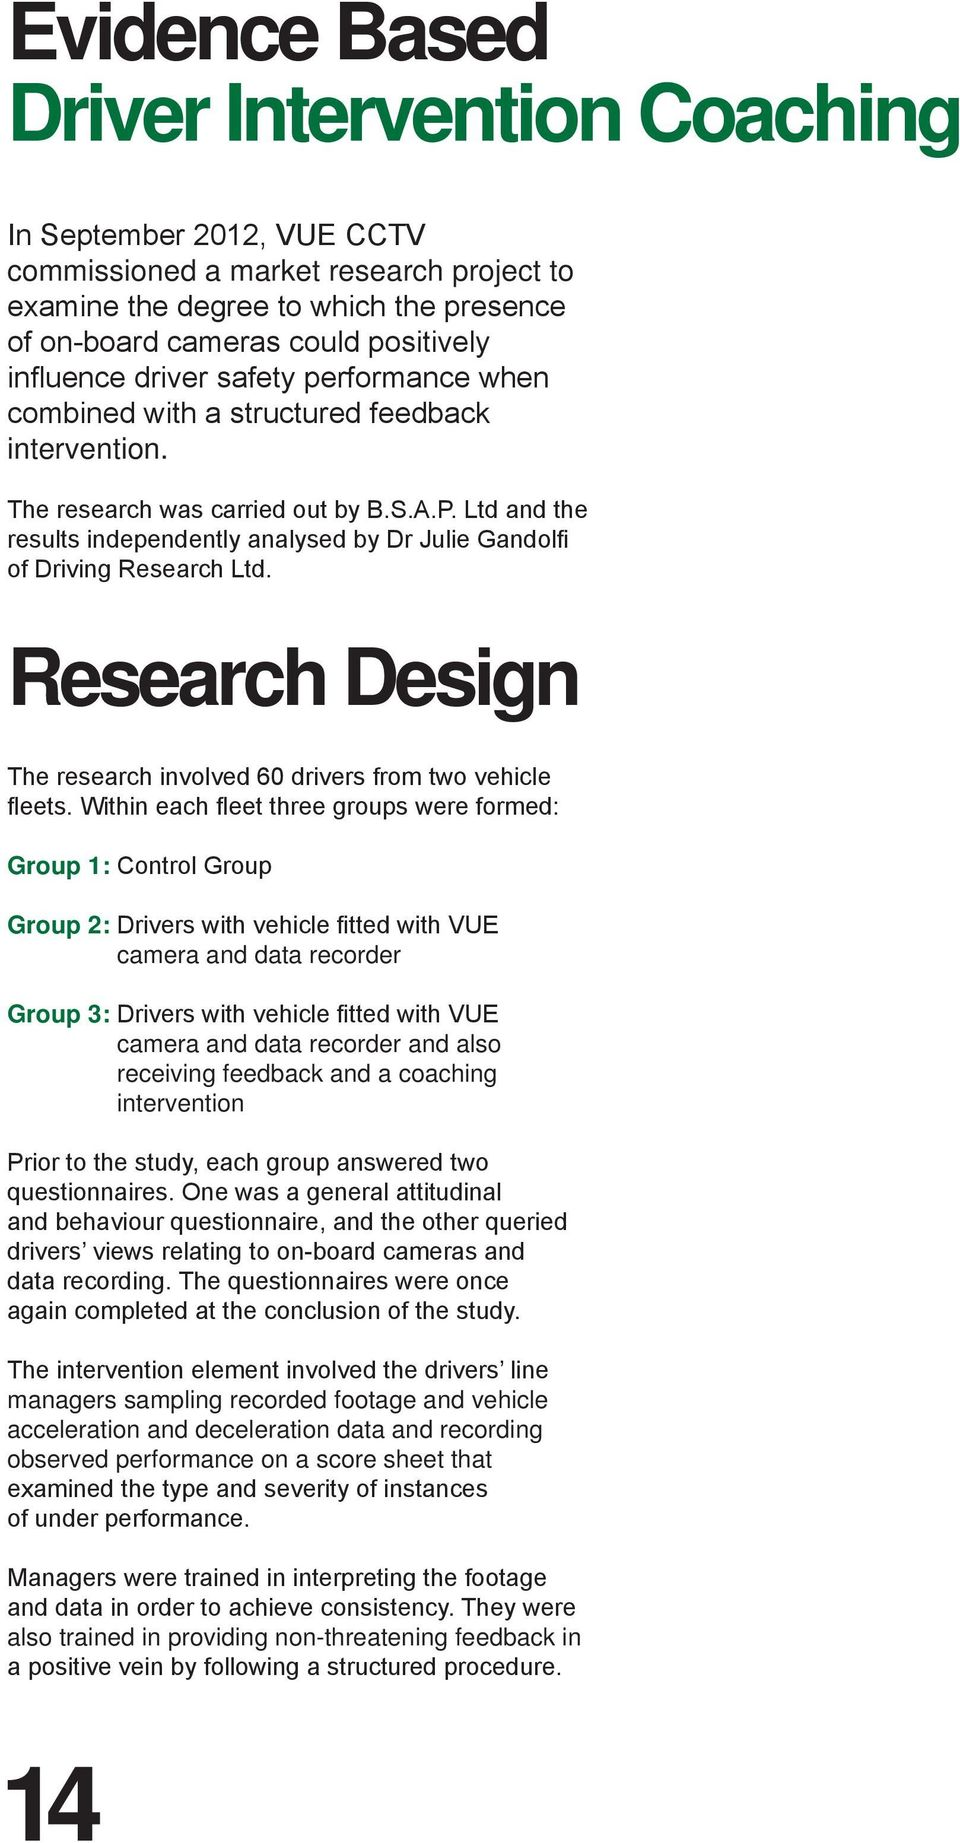 Ltd and the results independently analysed by Dr Julie Gandolfi of Driving Research Ltd. Research Design The research involved 60 drivers from two vehicle fleets.